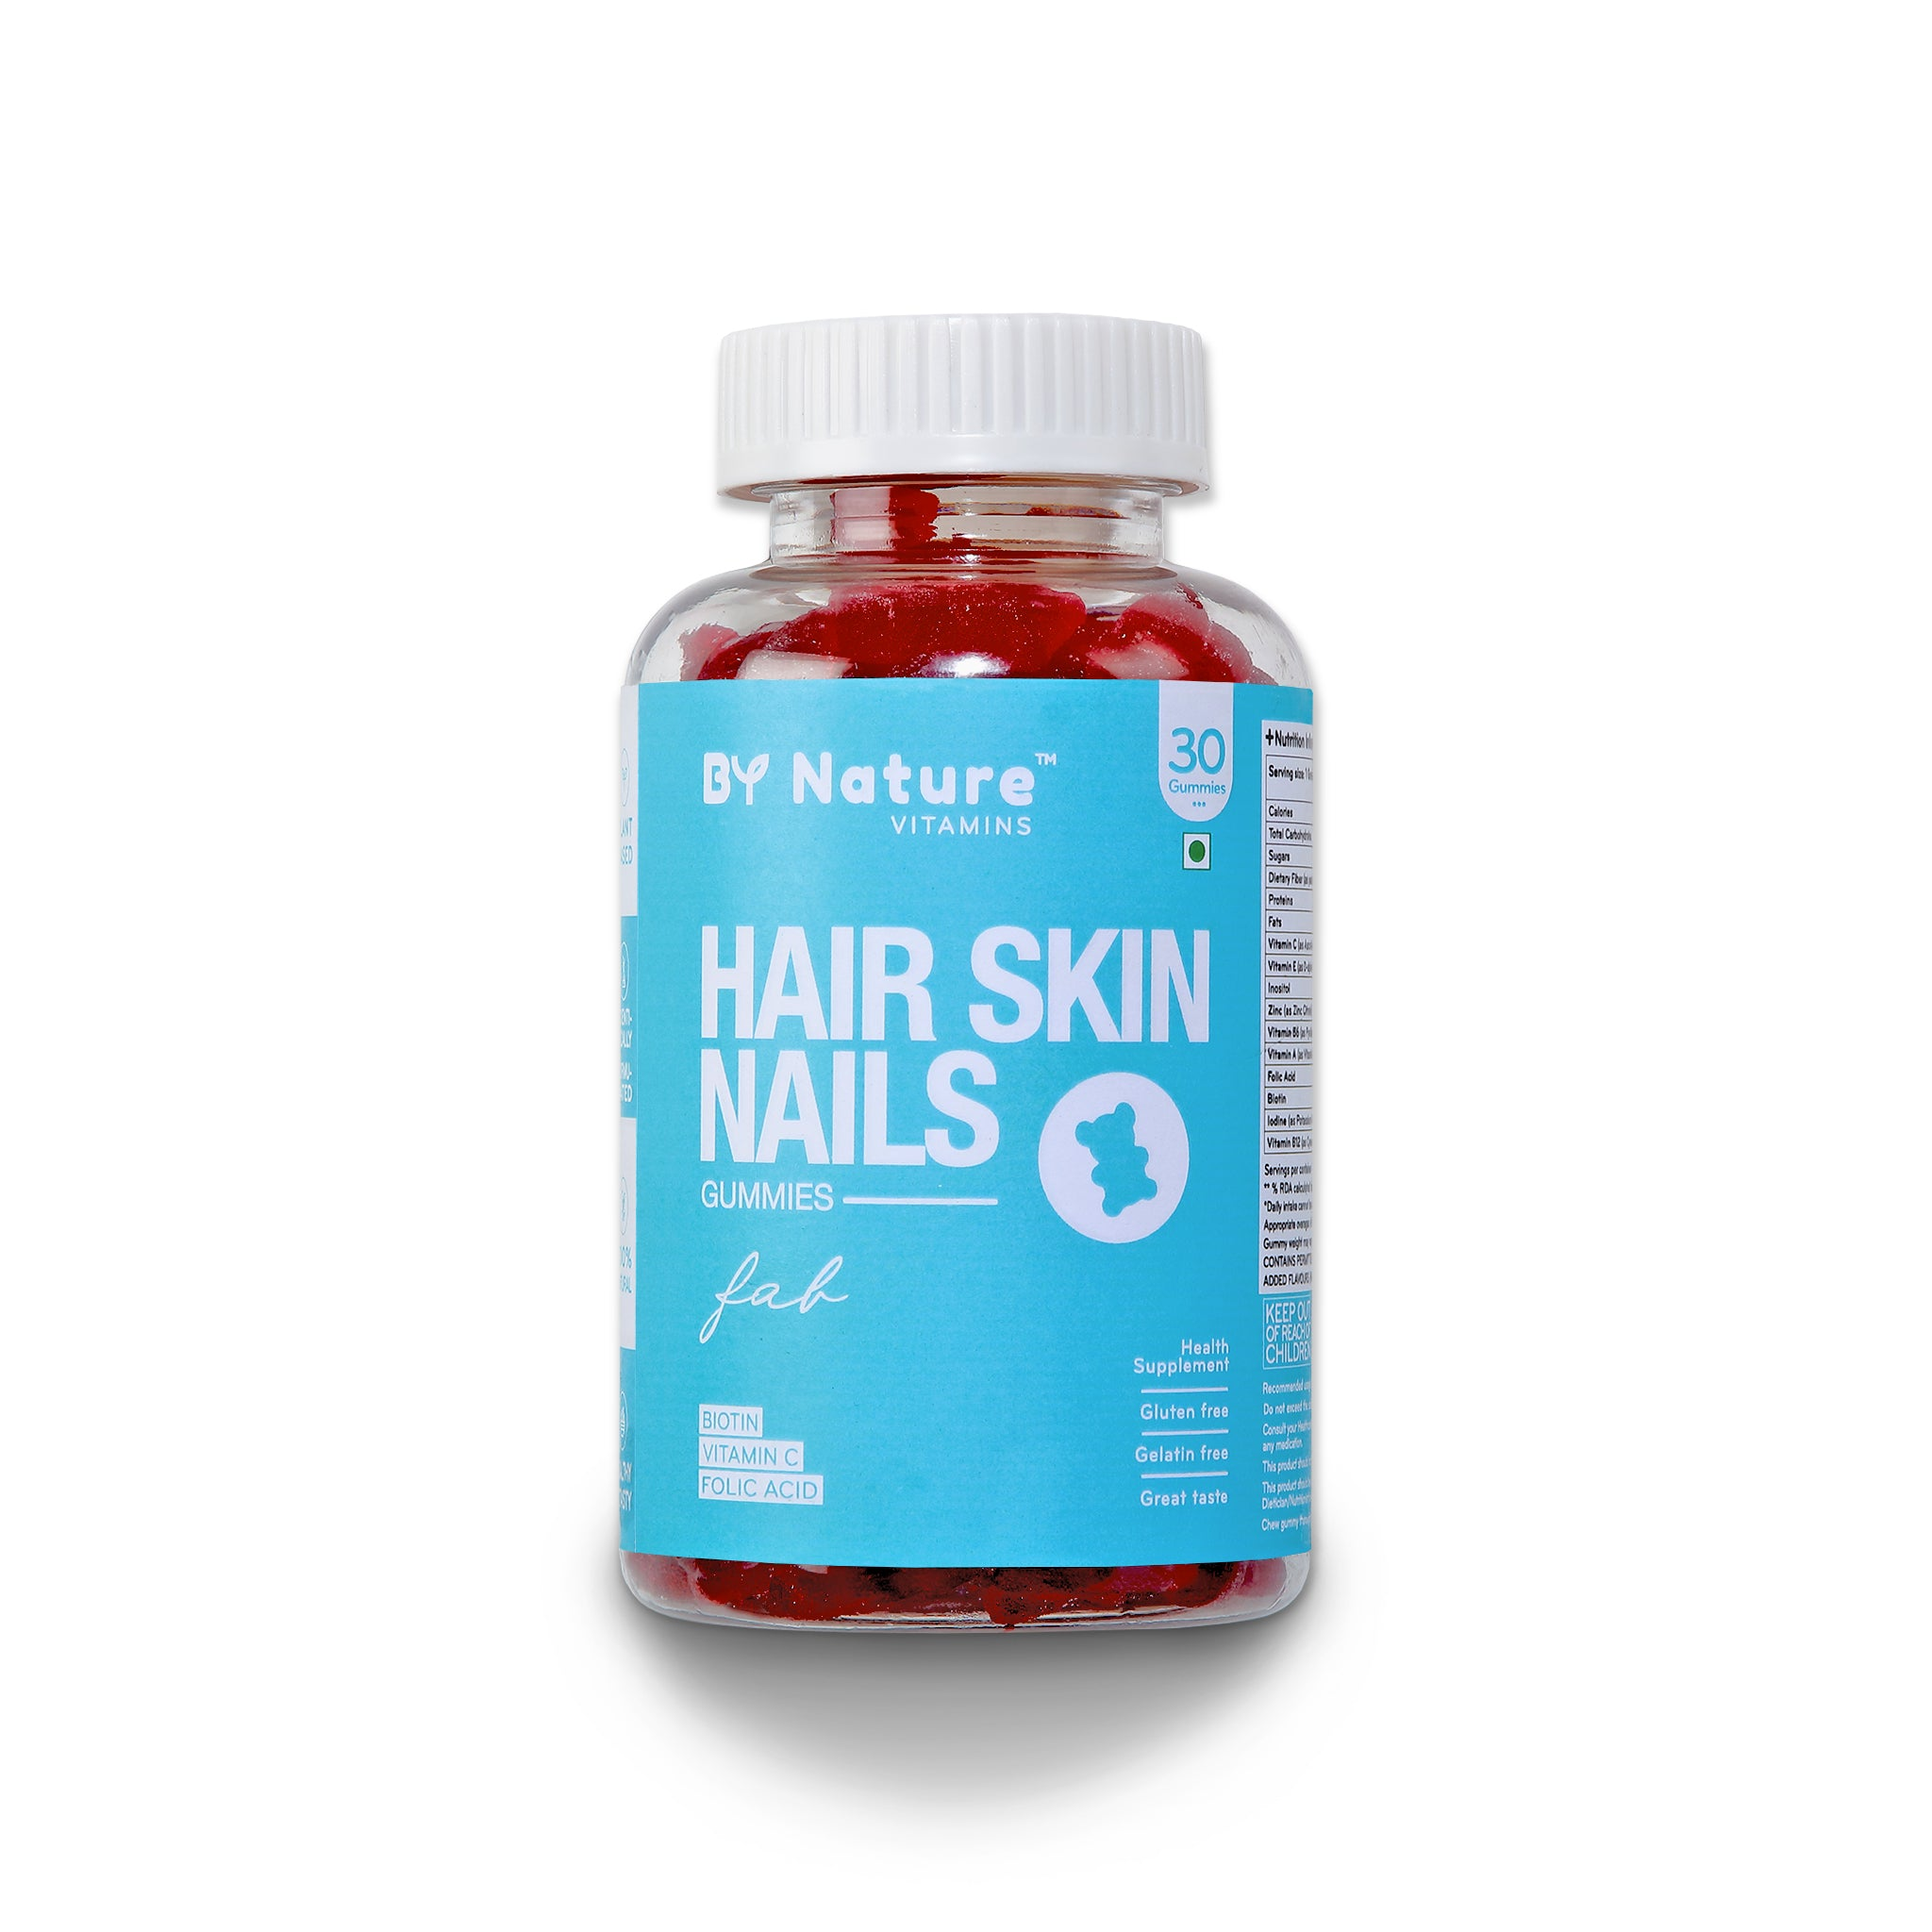 By Nature Hair Skin Nail Vitamin Gummies with Biotin & Folic Acid, 30 gummies (1 month pack)